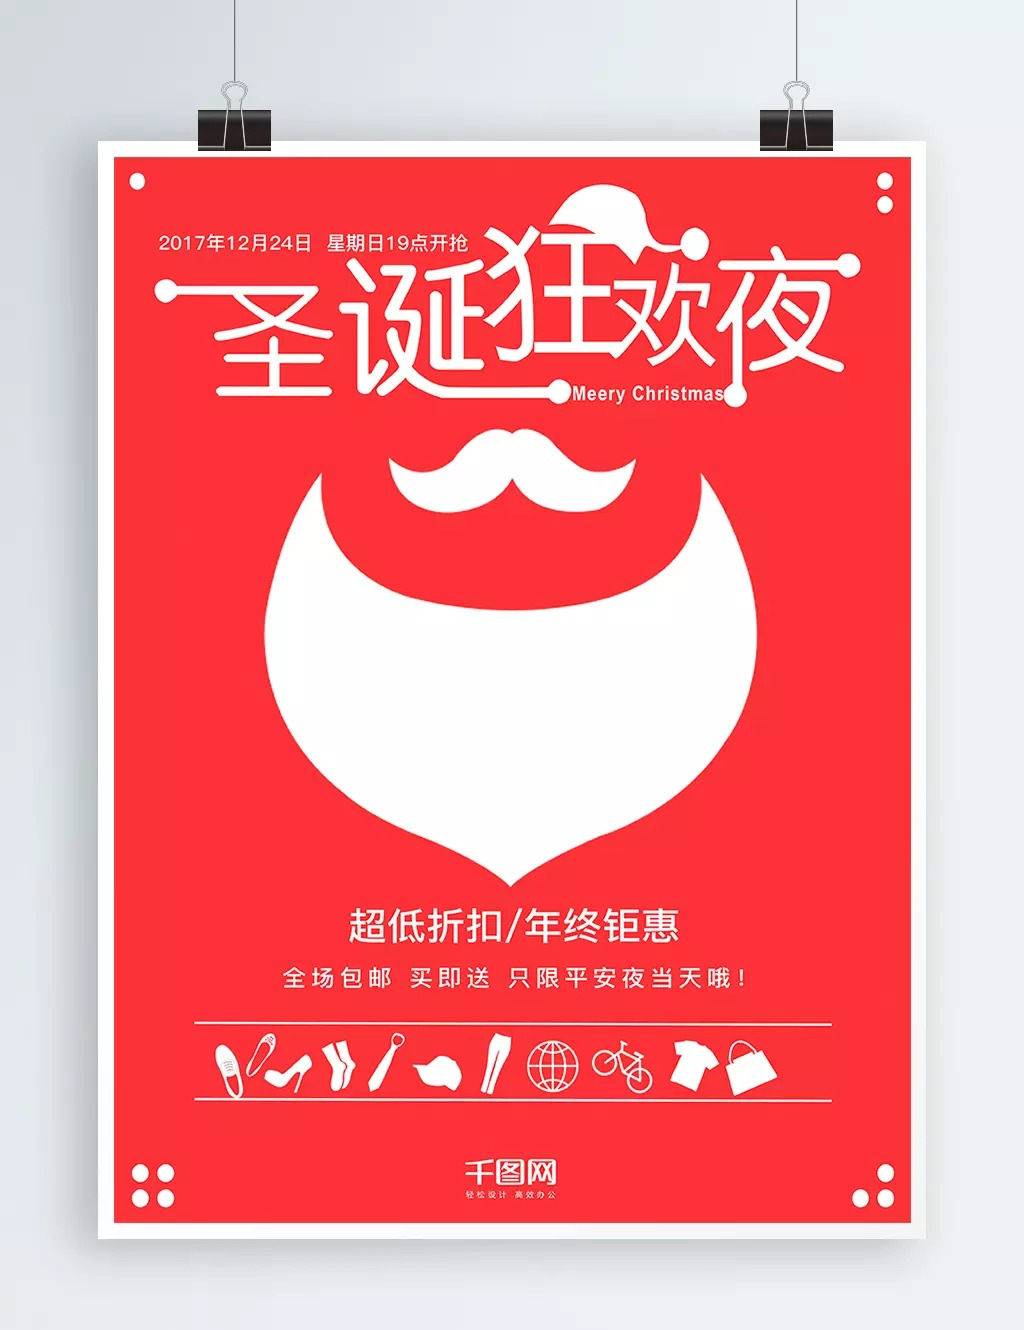 Christmas Red Atmosphere Poster Carnival Night Festival Red